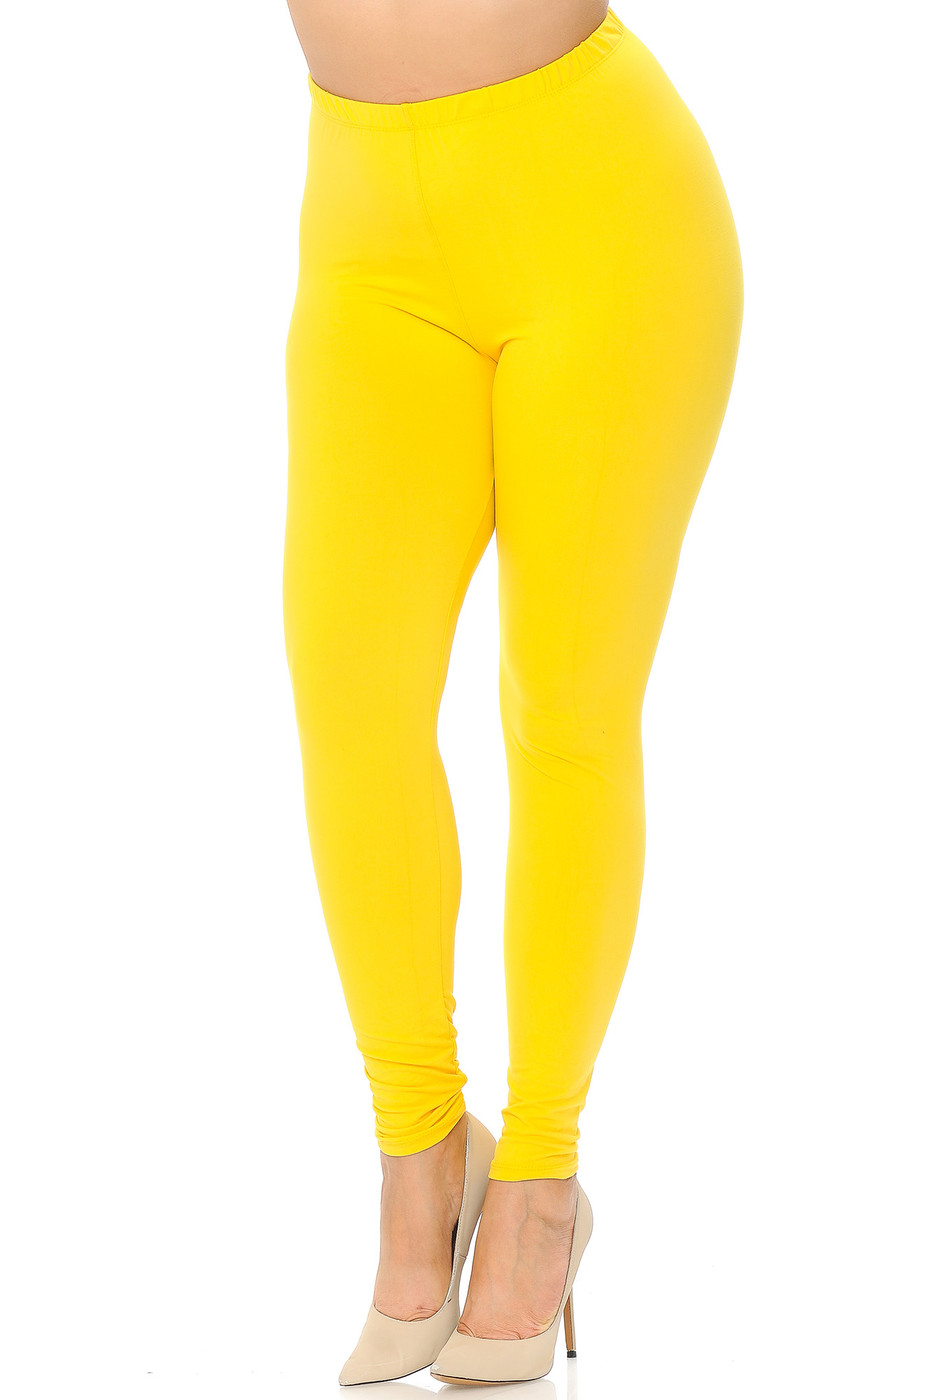 Buttery Soft Basic Solid Leggings - Extra Plus Size - 3X-5X - EEVEE